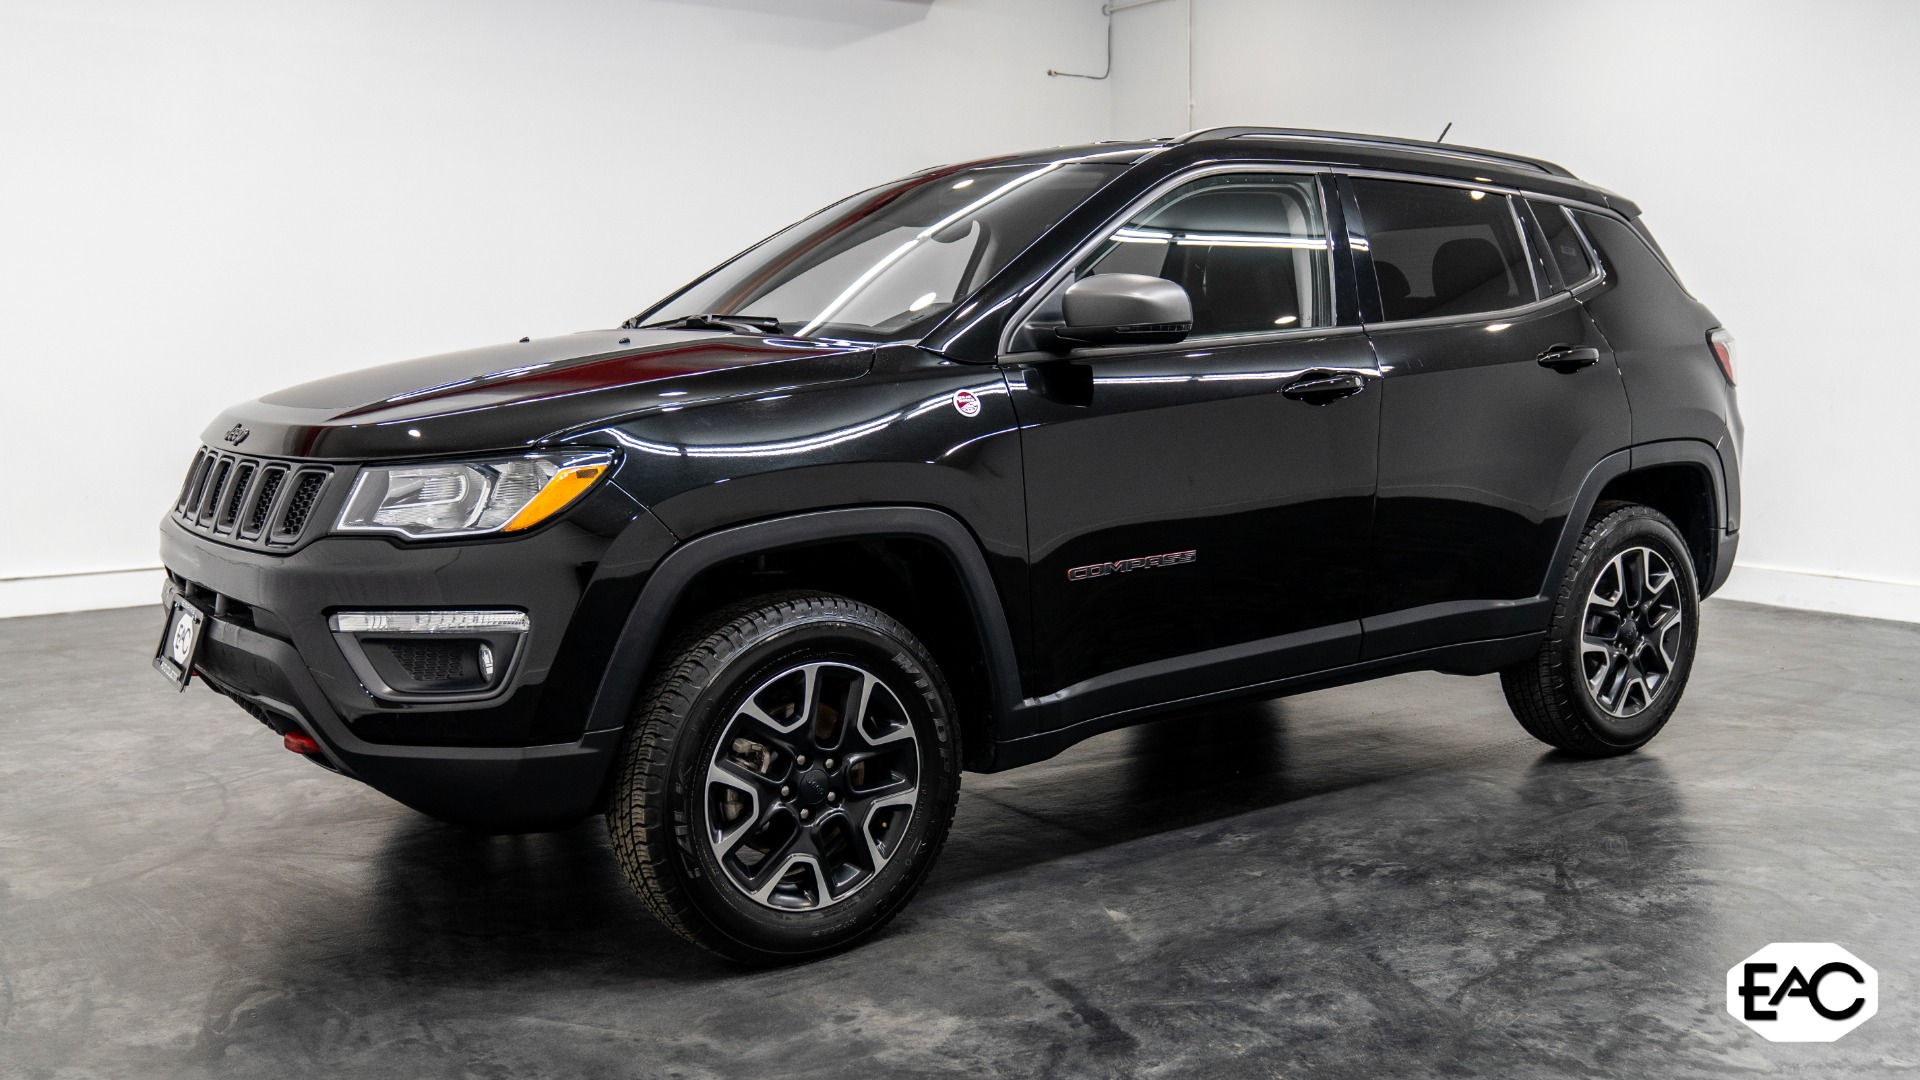 Used 2020 Jeep Compass Trailhawk for sale Sold at Empire Auto Collection in Warren MI 48091 1